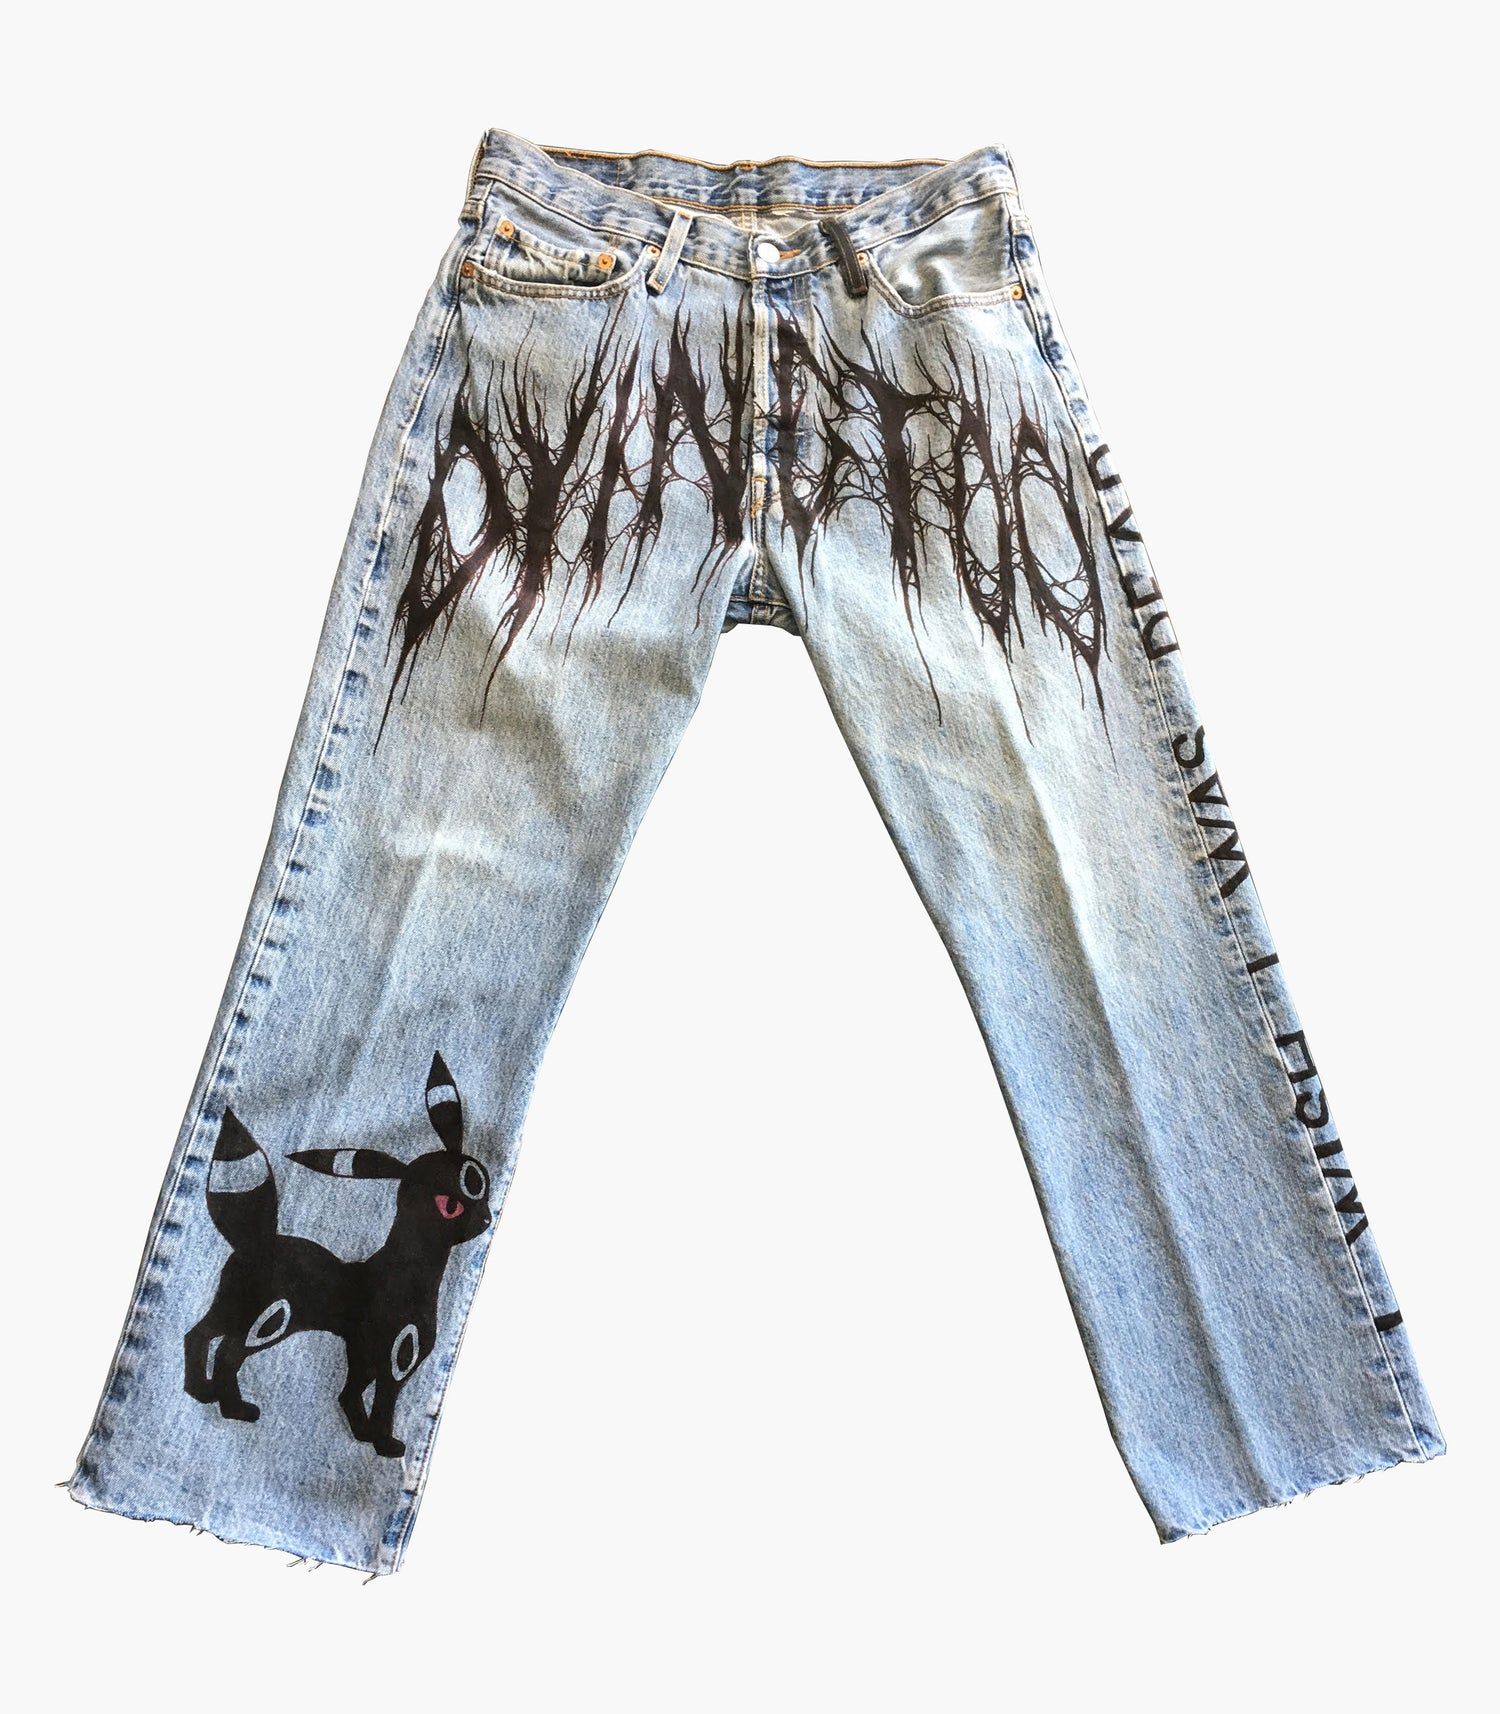 Image of 1/1 I WISH I WAS DEAD PANTS